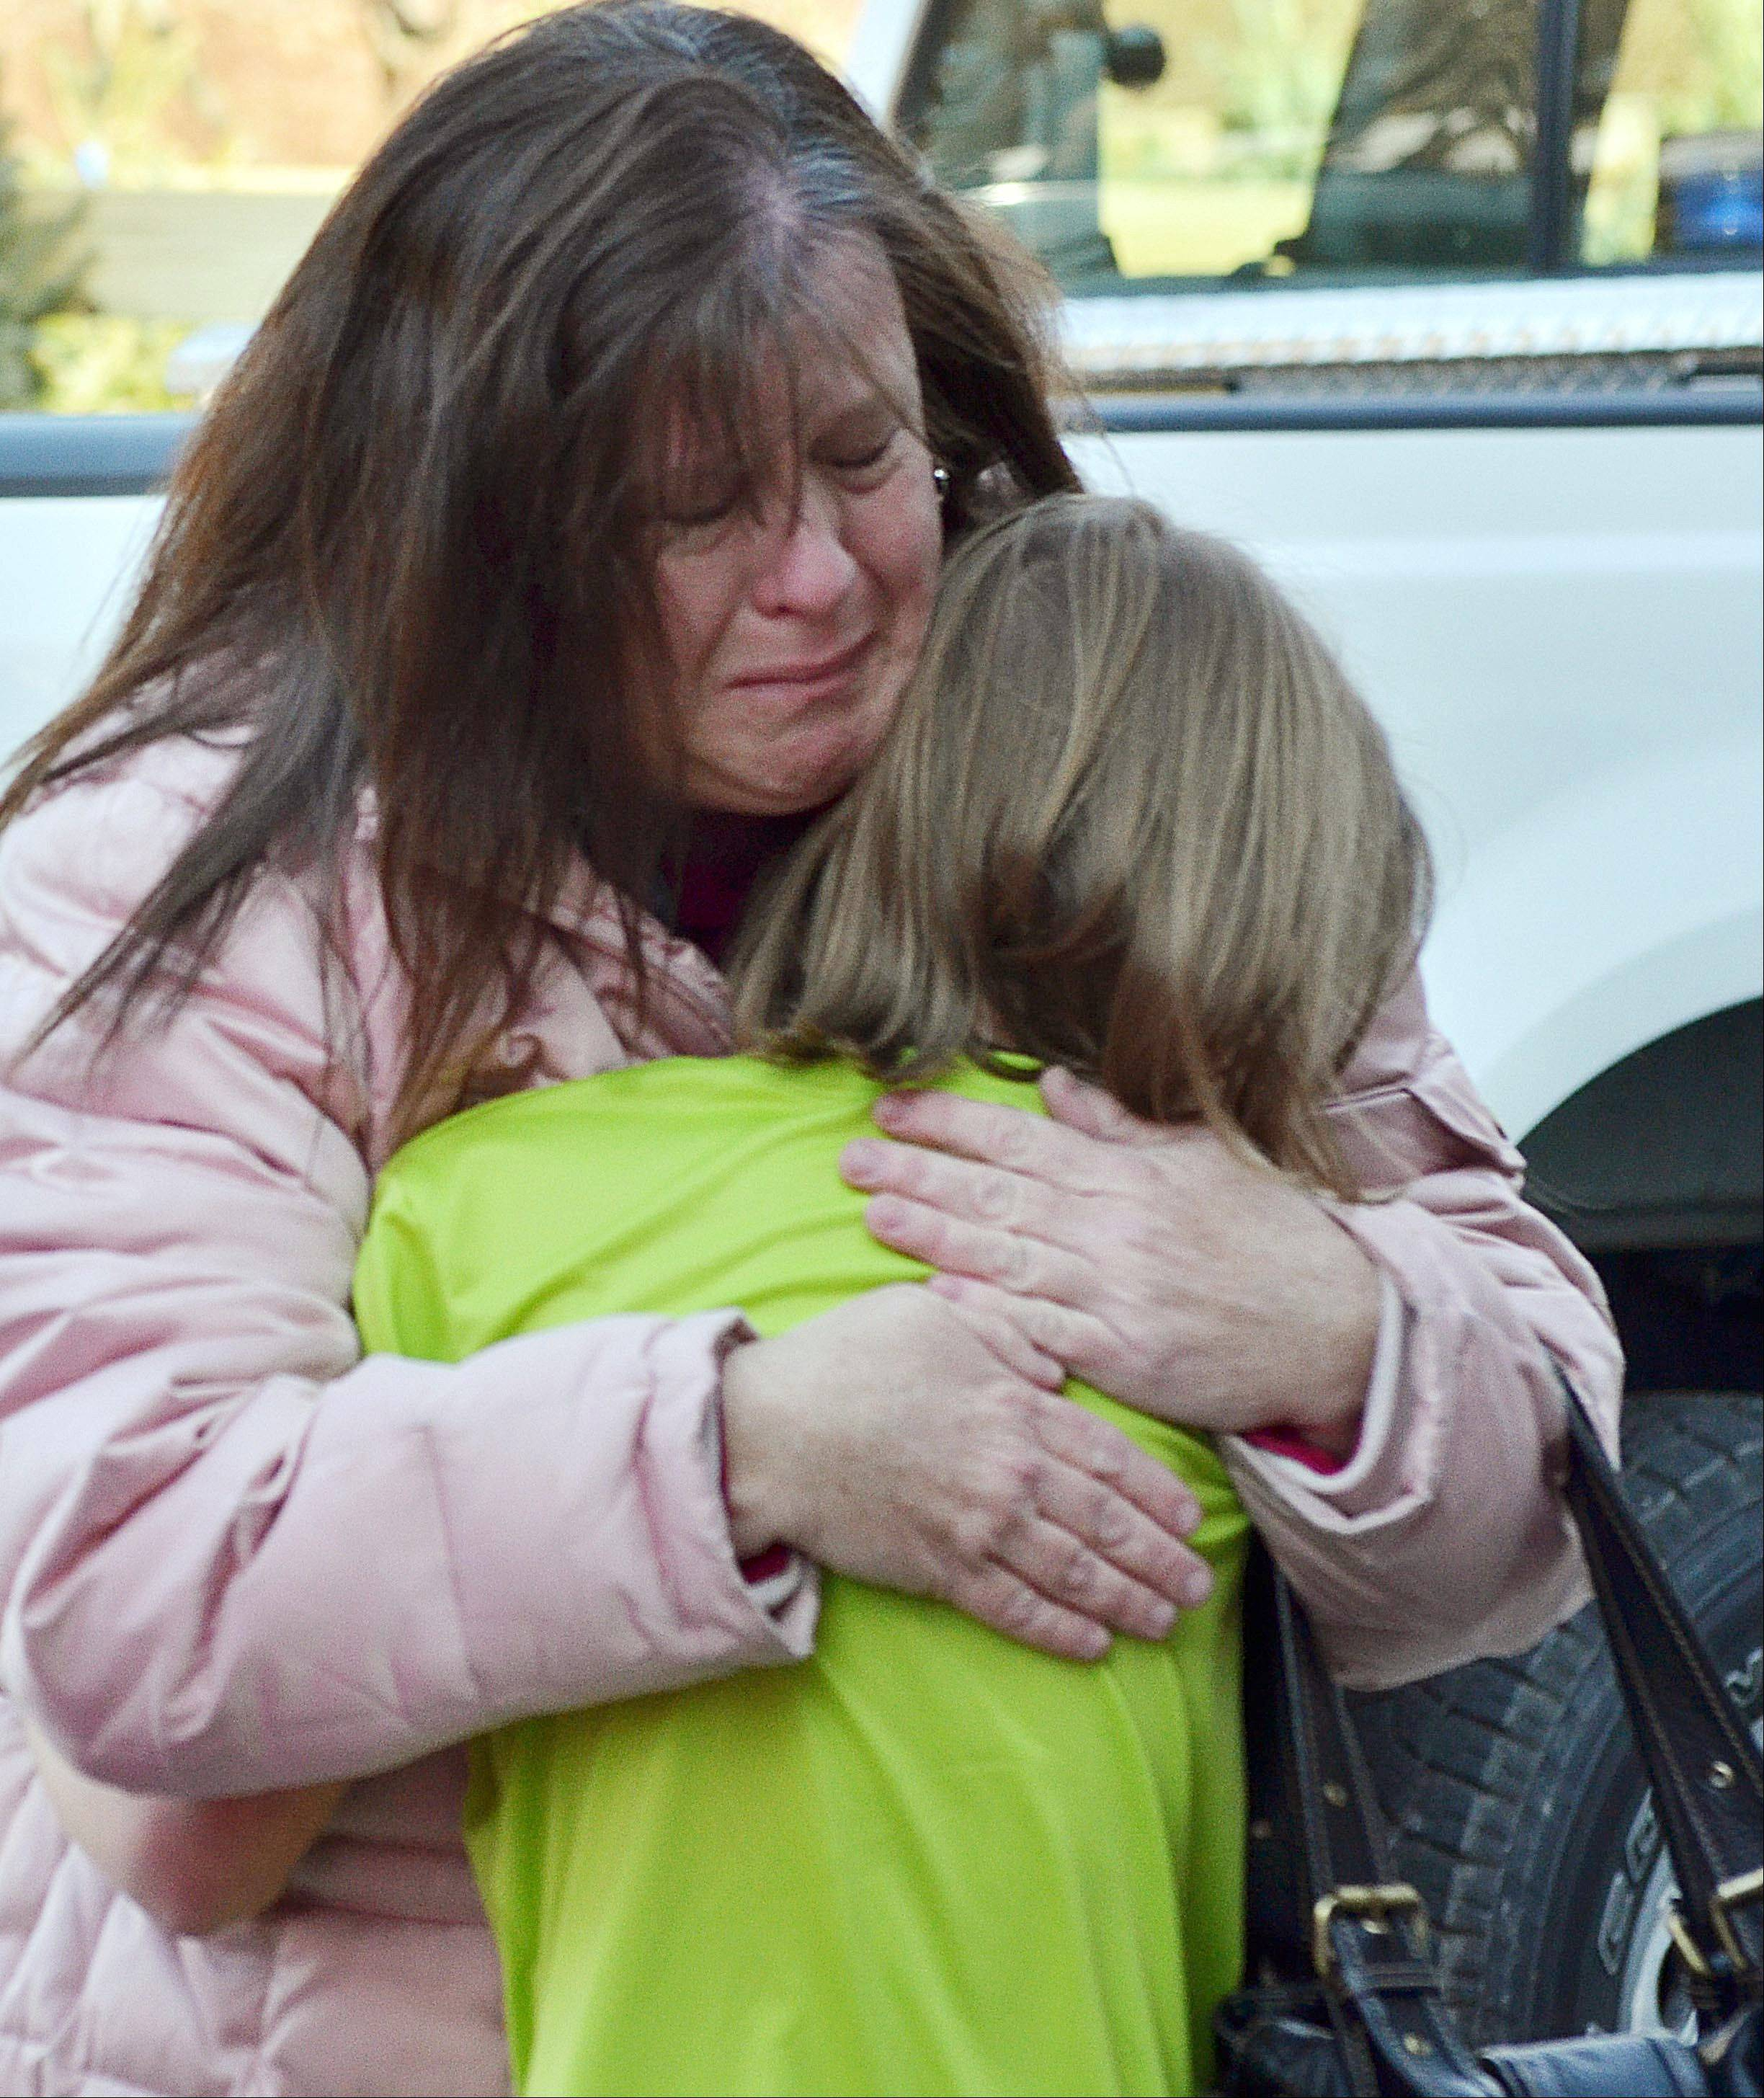 A mother hugs her daughter following a shooting at the Sandy Hook Elementary School in Newtown, Conn., Dec. 14, 2012.